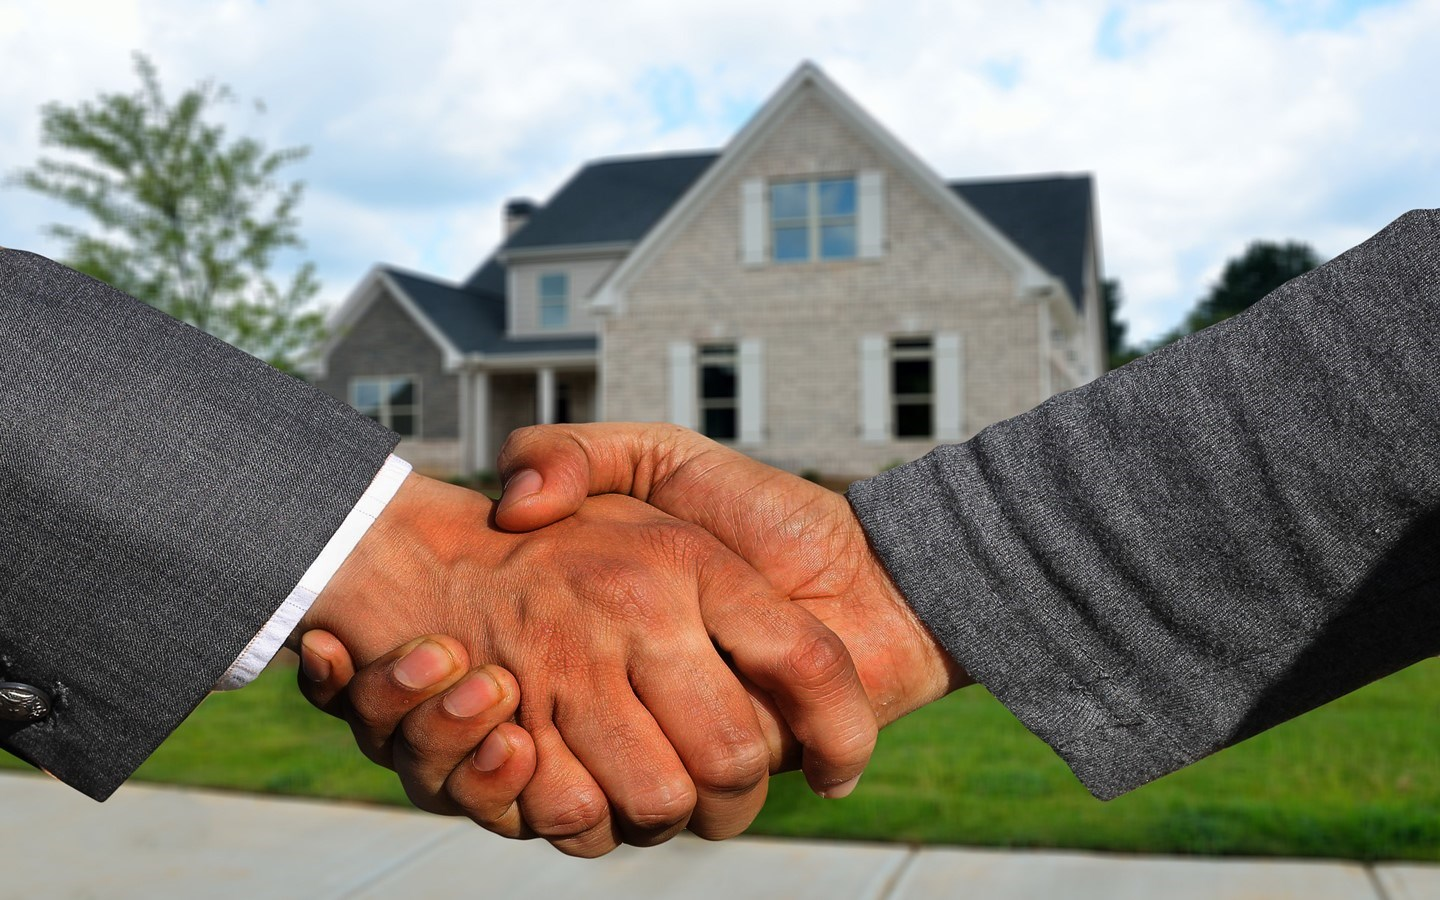 Government employees will be at the forefront of real estate transaction